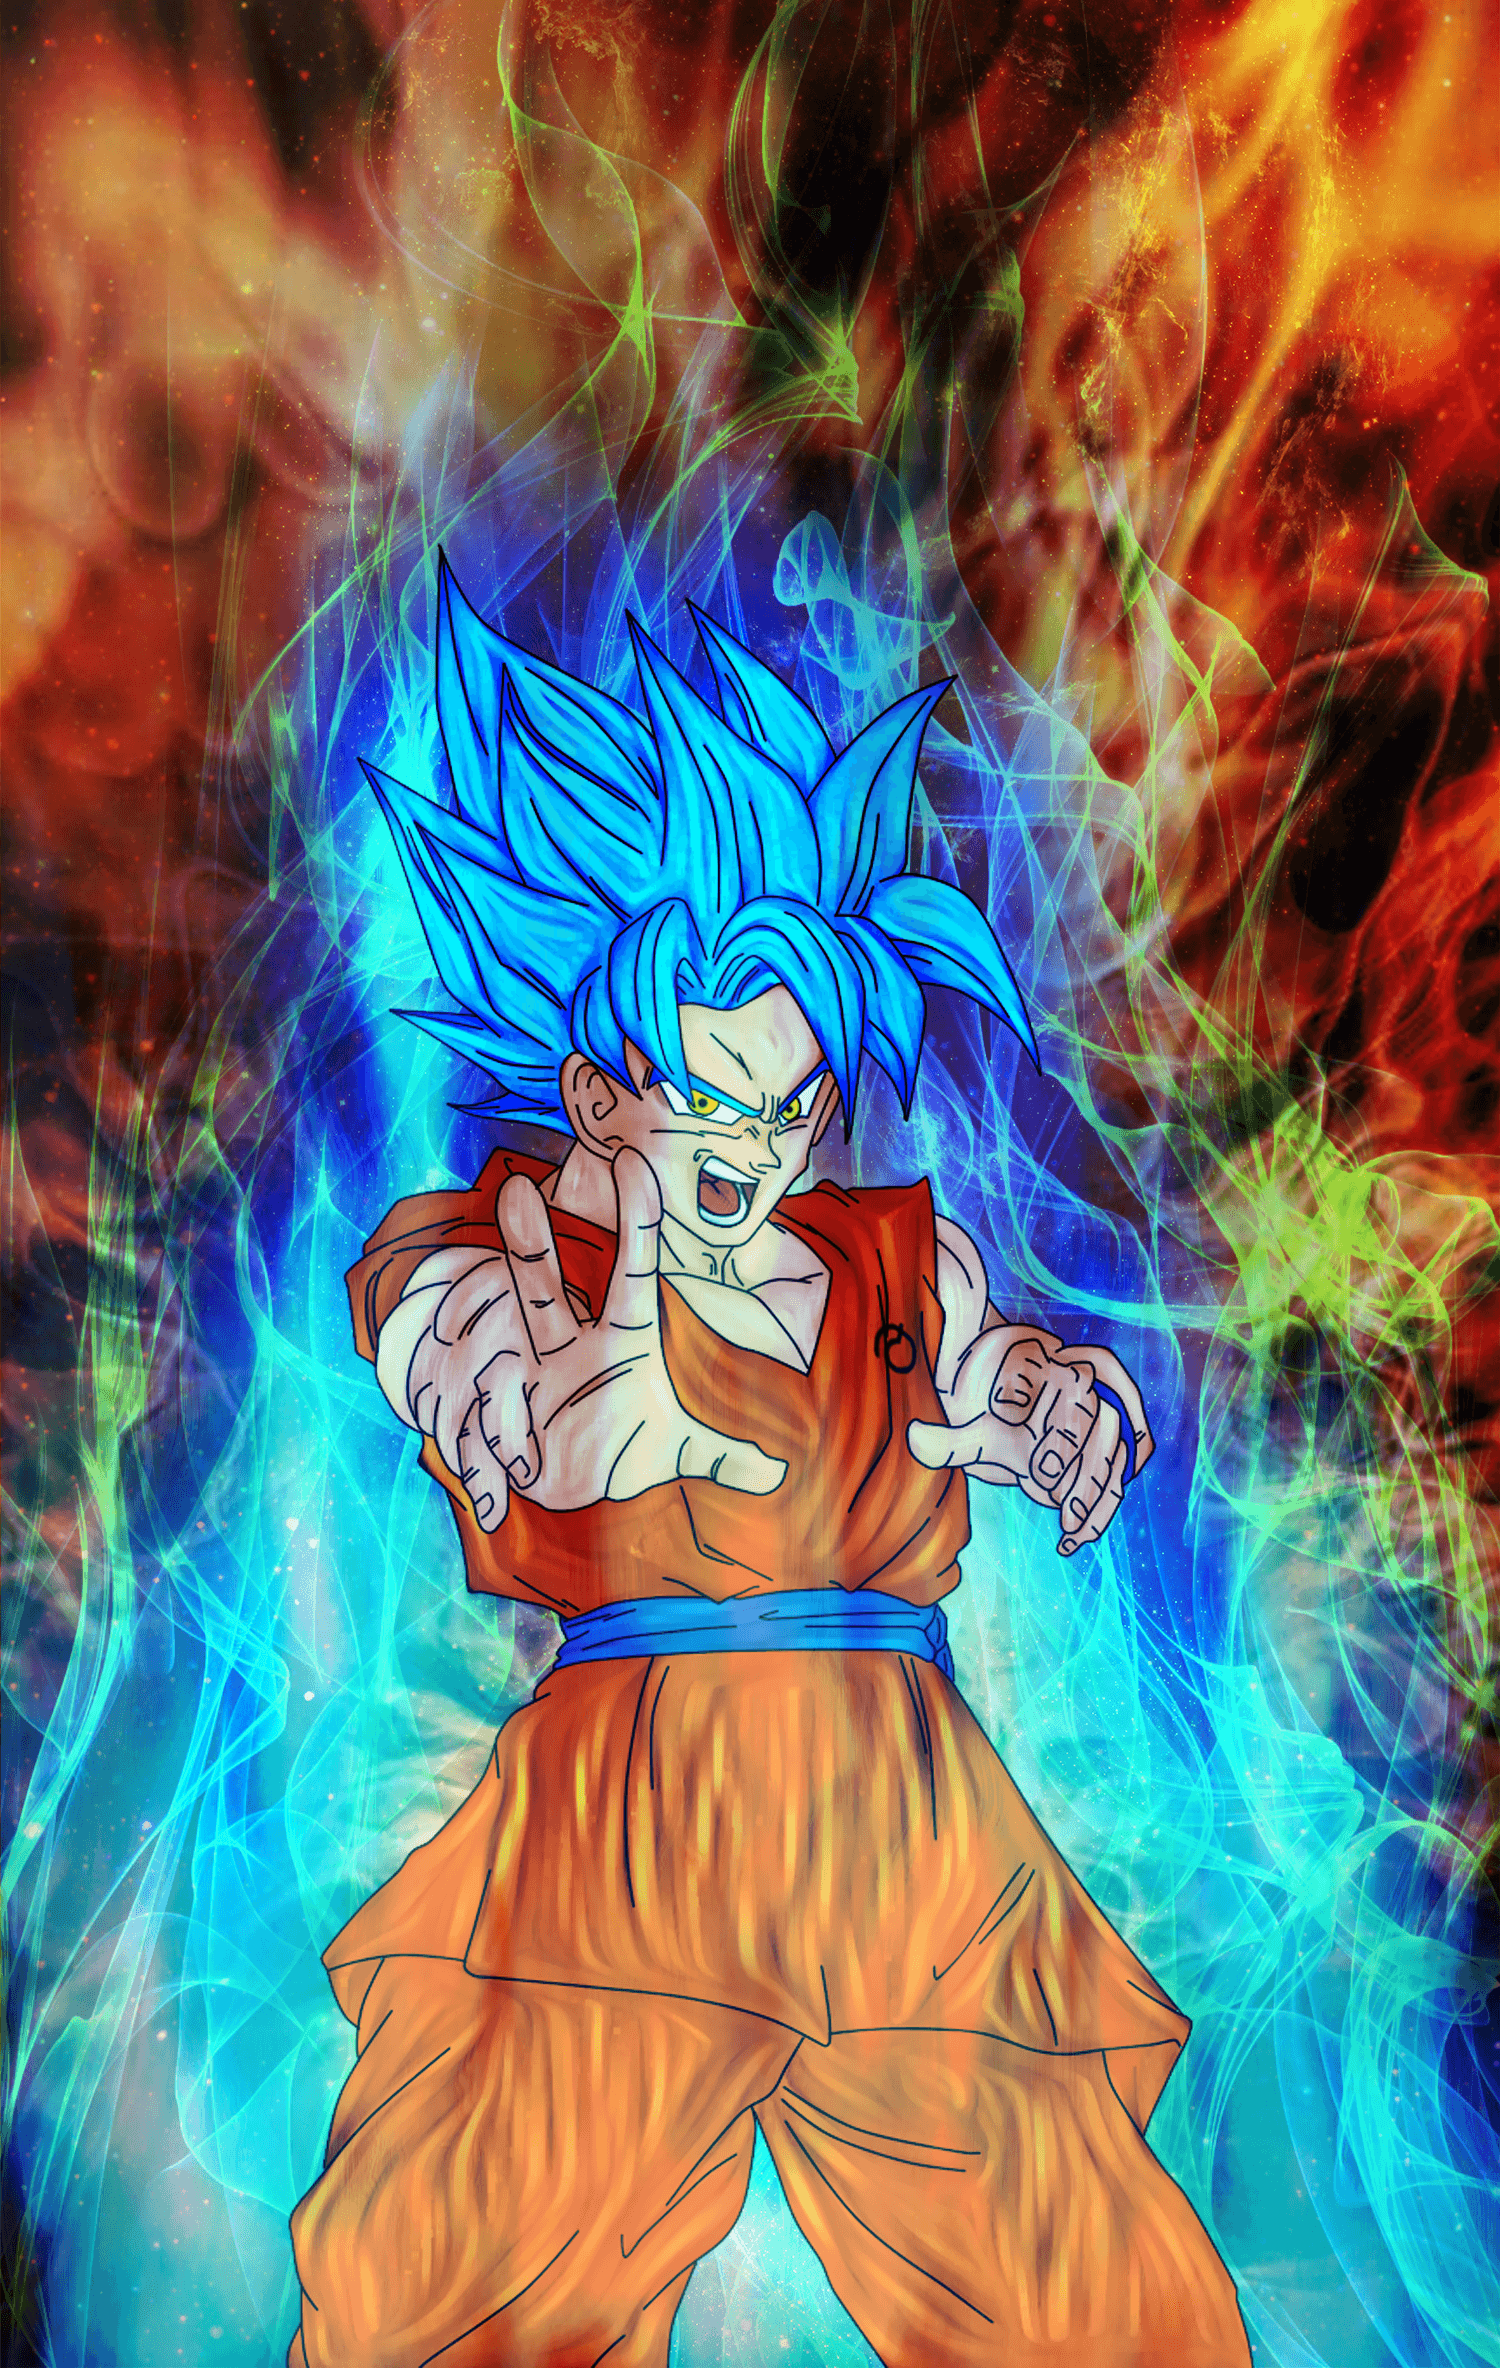 Super Saiyan God Super Saiyan Wallpapers - Wallpaper Cave |Goku Super Sayian God